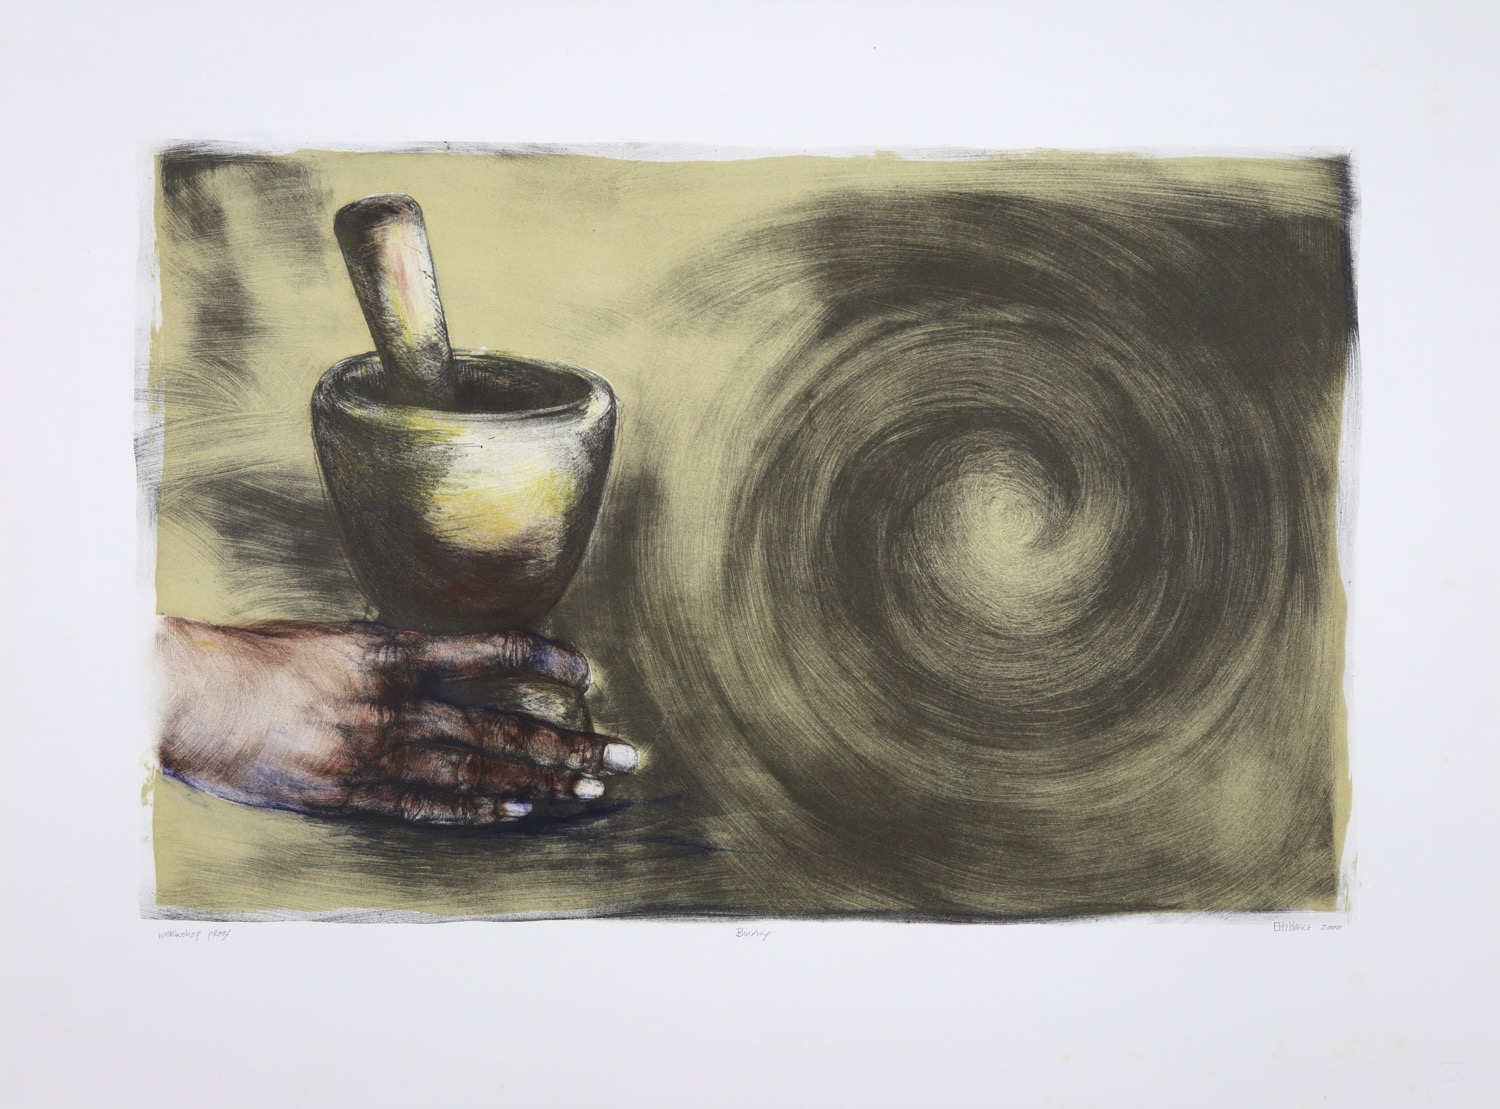 Hand holding a pestle and mortar with spiral form across second half of the lithograph